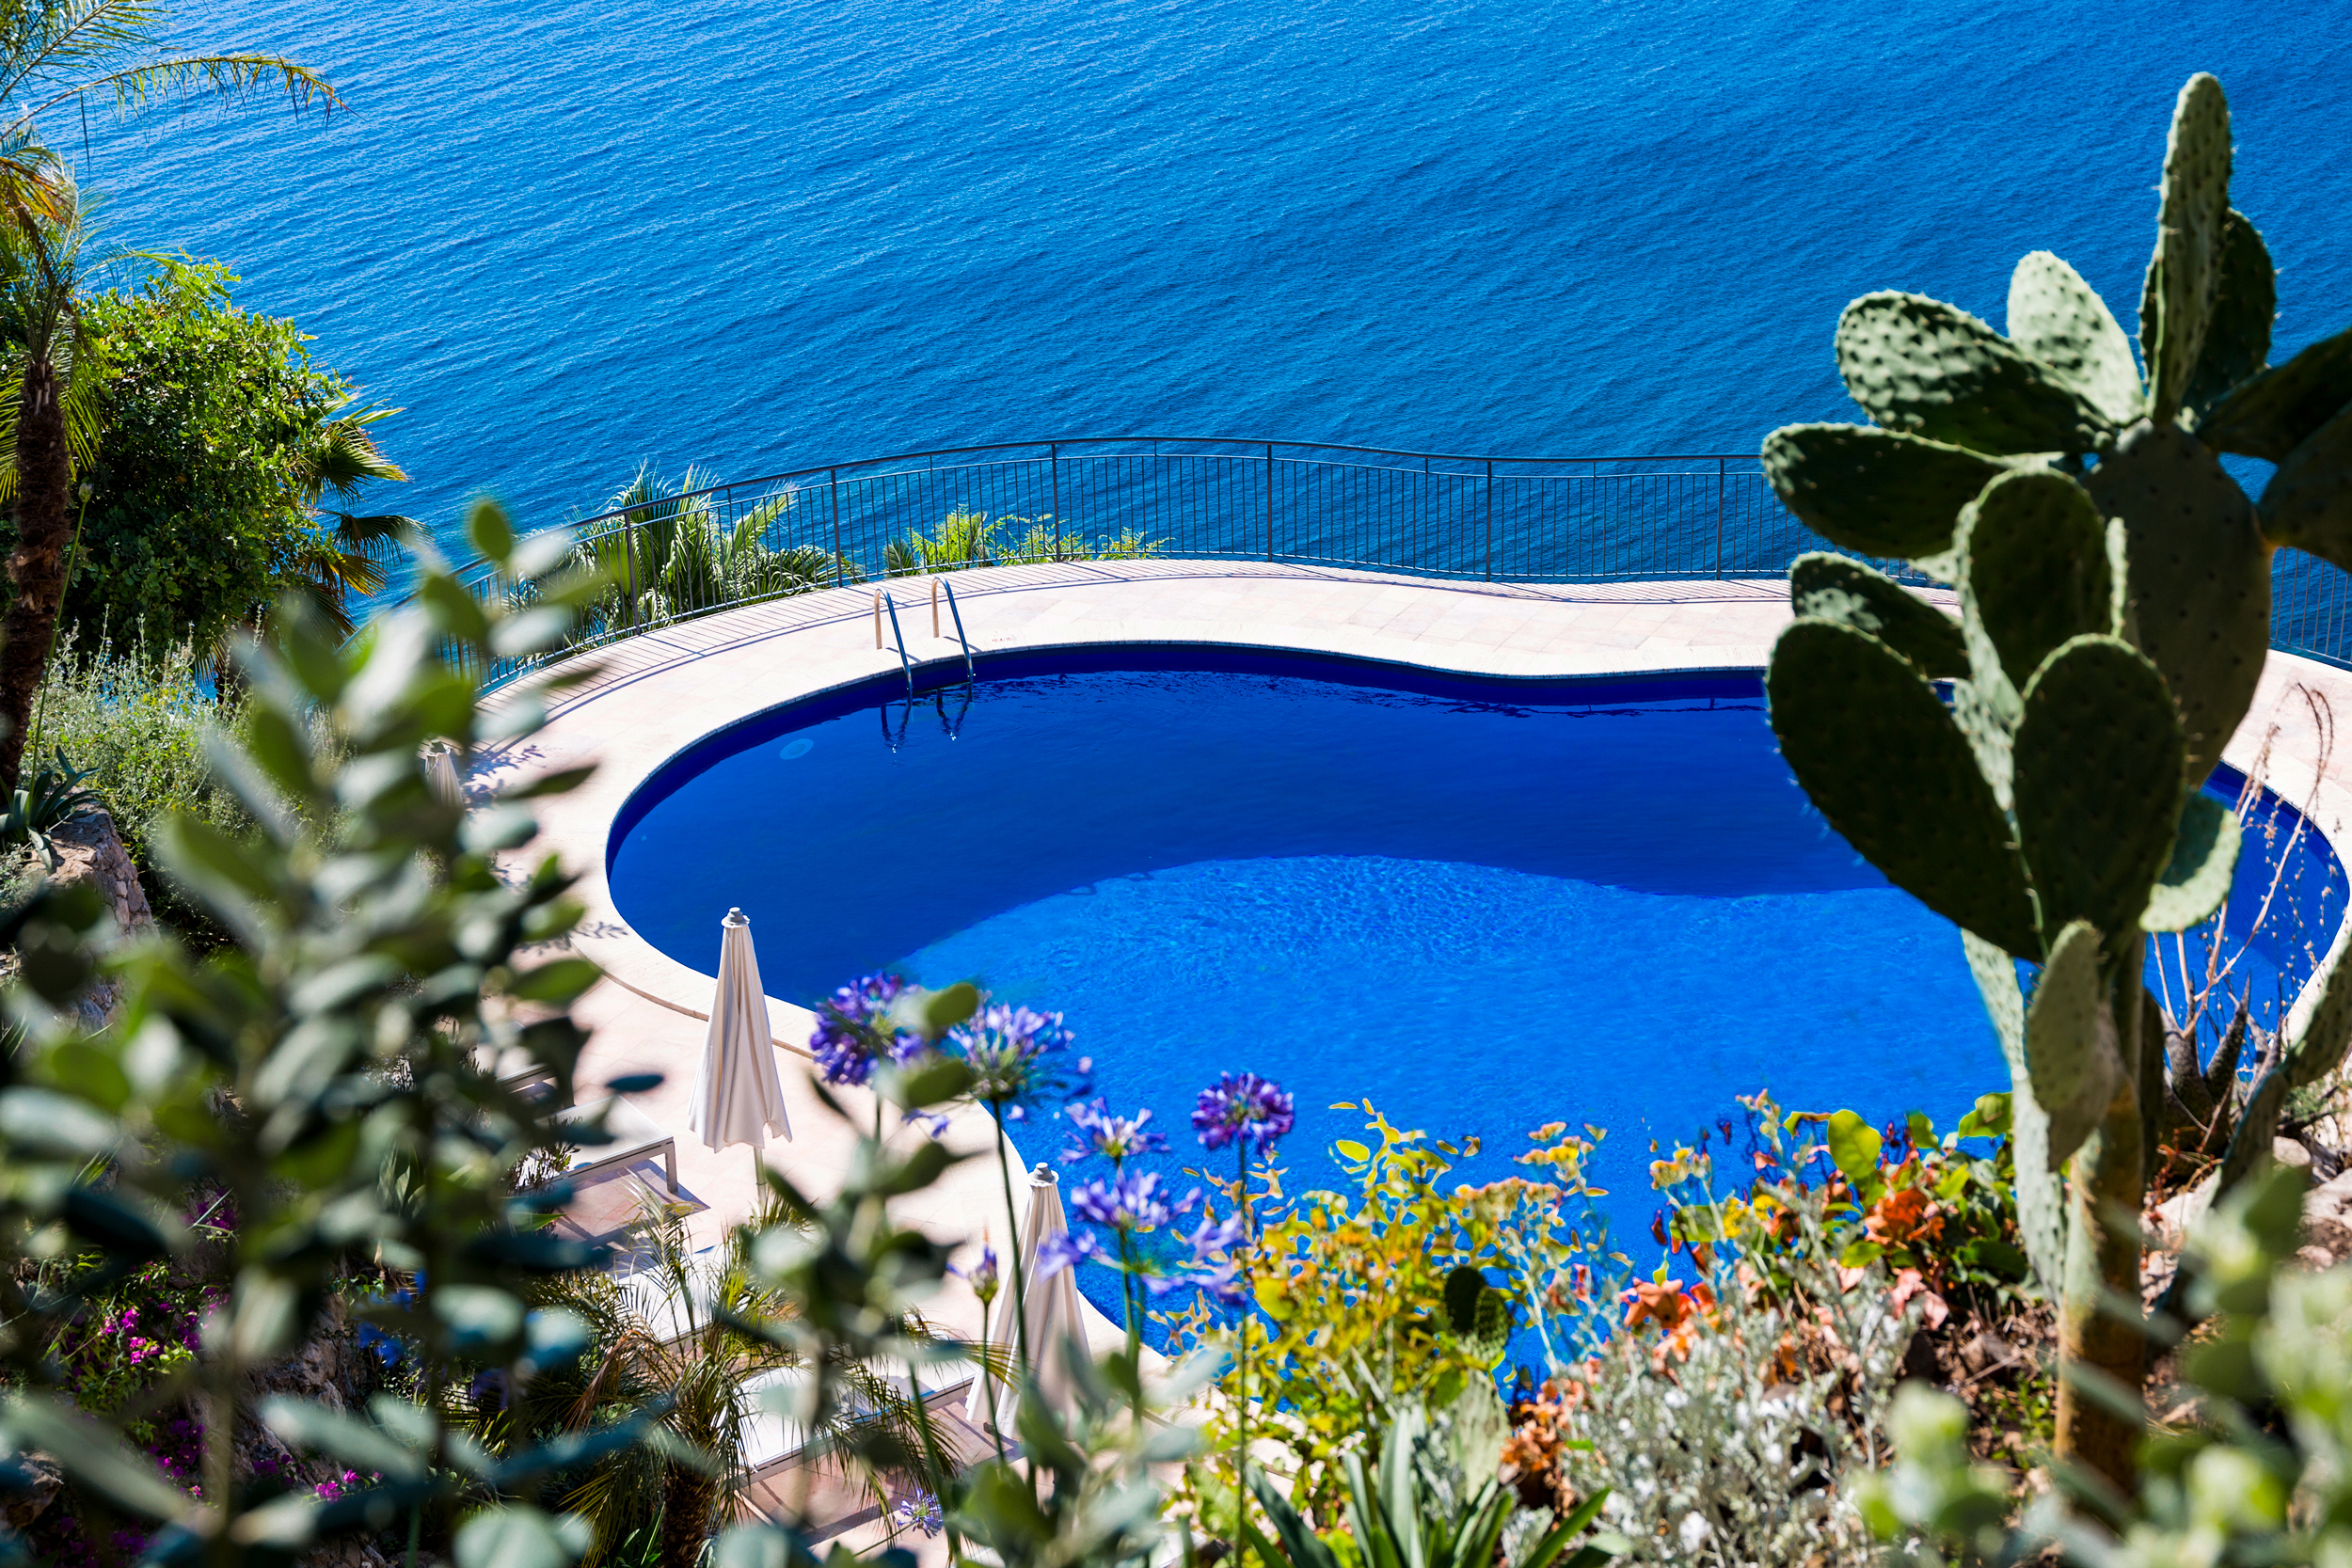 Star-crystal-sea-hotel-marina-agro-taormina-pool-garden-Holiday-Sicily